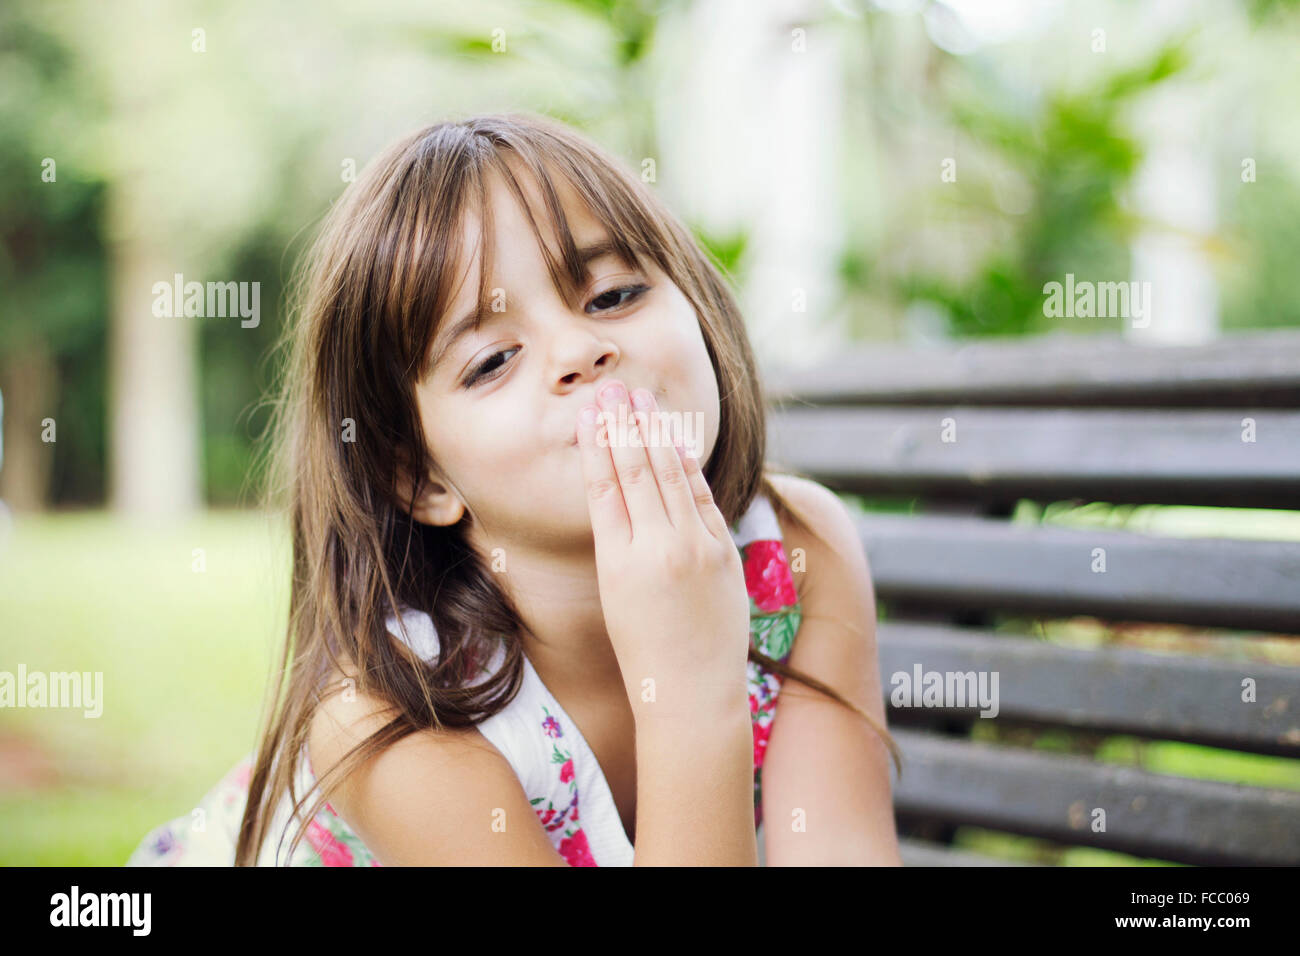 Portrait Of cute girl Blowing A Kiss Photo Stock